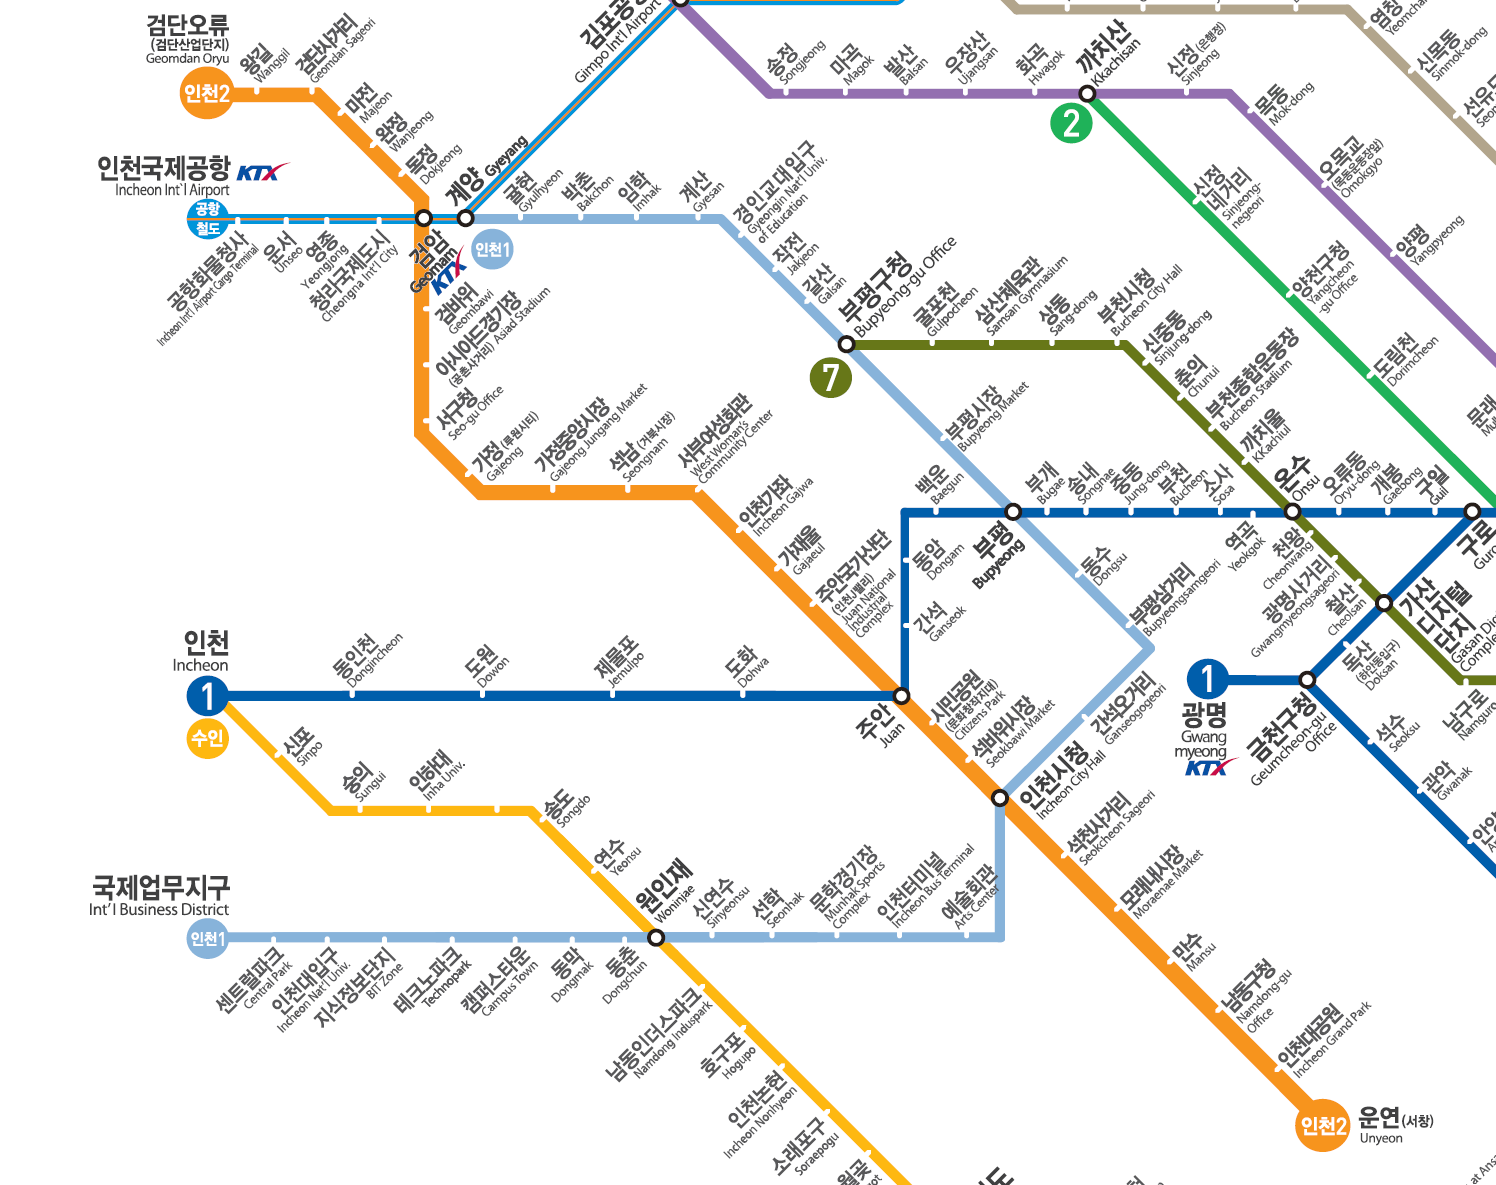 Seoul Subway Map 2015.South Korean Subway Lines Seoul Metro Busan Daegu Gwangju